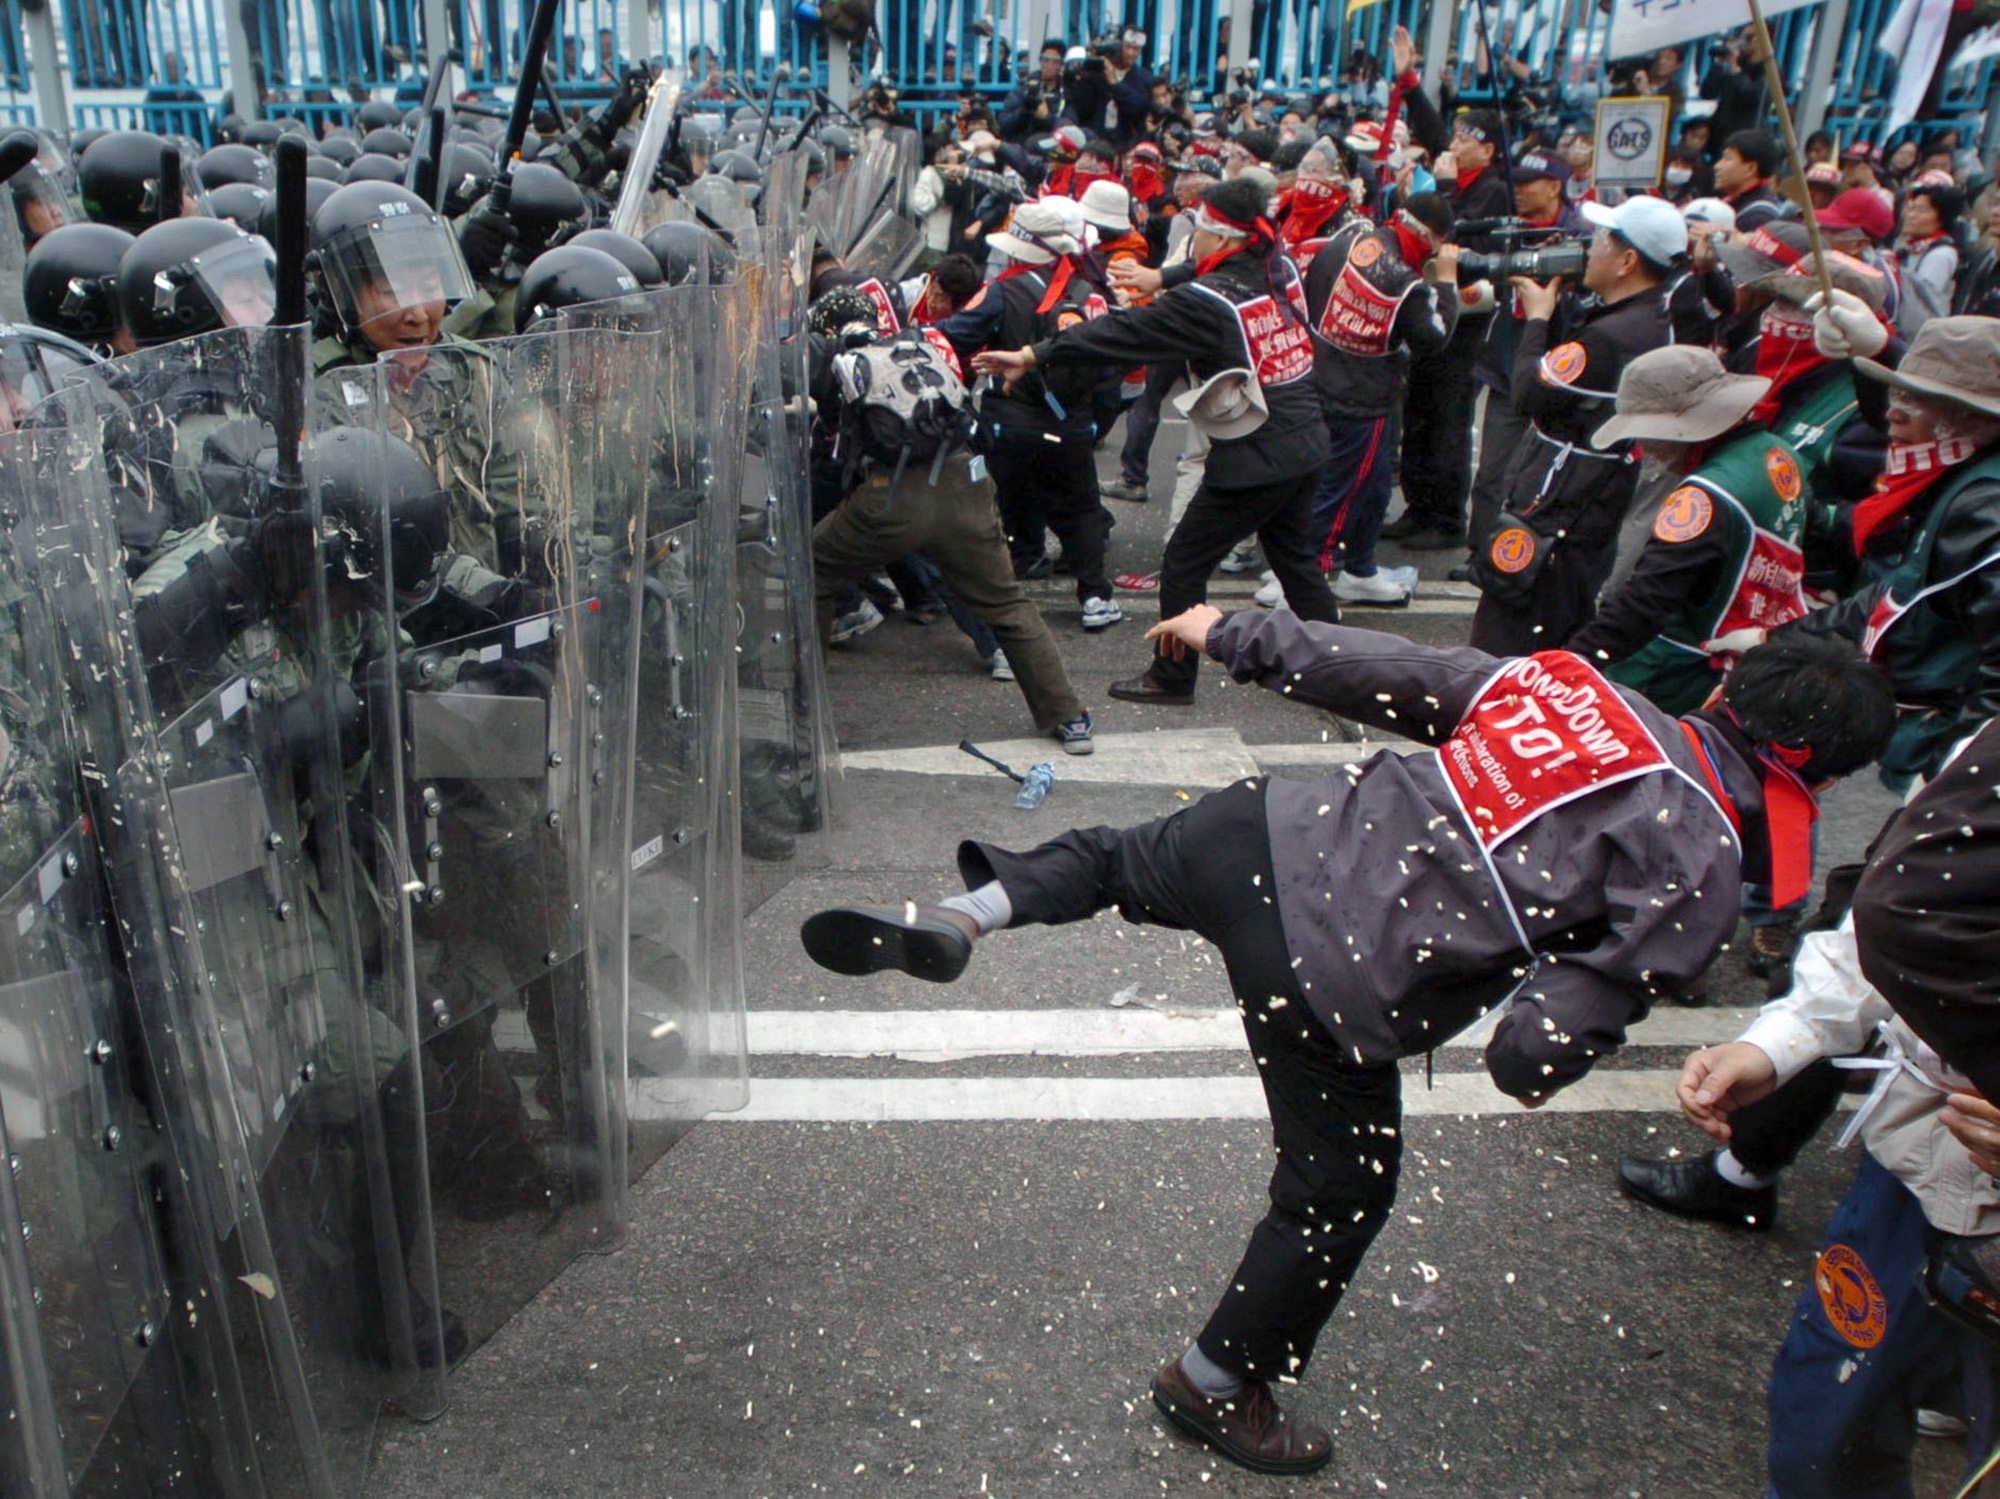 South Korean trade unionists scuffle with riot police during protests against the World Trade Organization's Sixth Ministerial Conference in Hong Kong on Dec. 14, 2005.  The vehemence of the demonstrations shocked the normally orderly territory and prefigured clashes that were to come on the same streets nine years later, when activists, this time local, would call for greater political freedom.